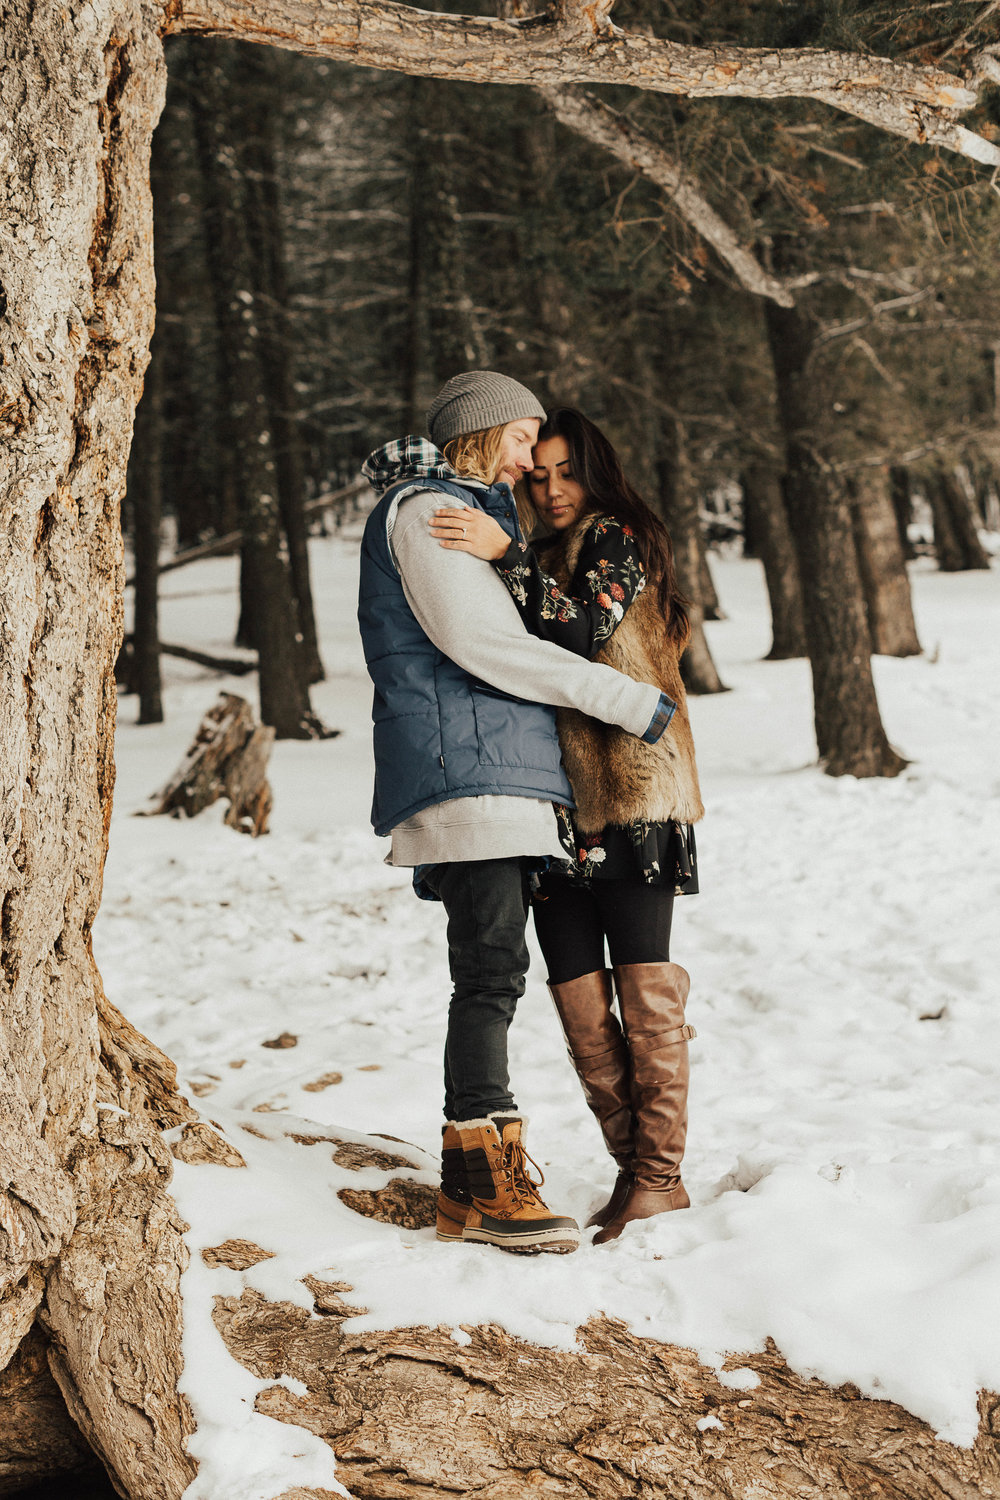 Banff Engagement Photographer - Winter Mountain Adventure Engagement Session - Michelle Larmand Photography-059